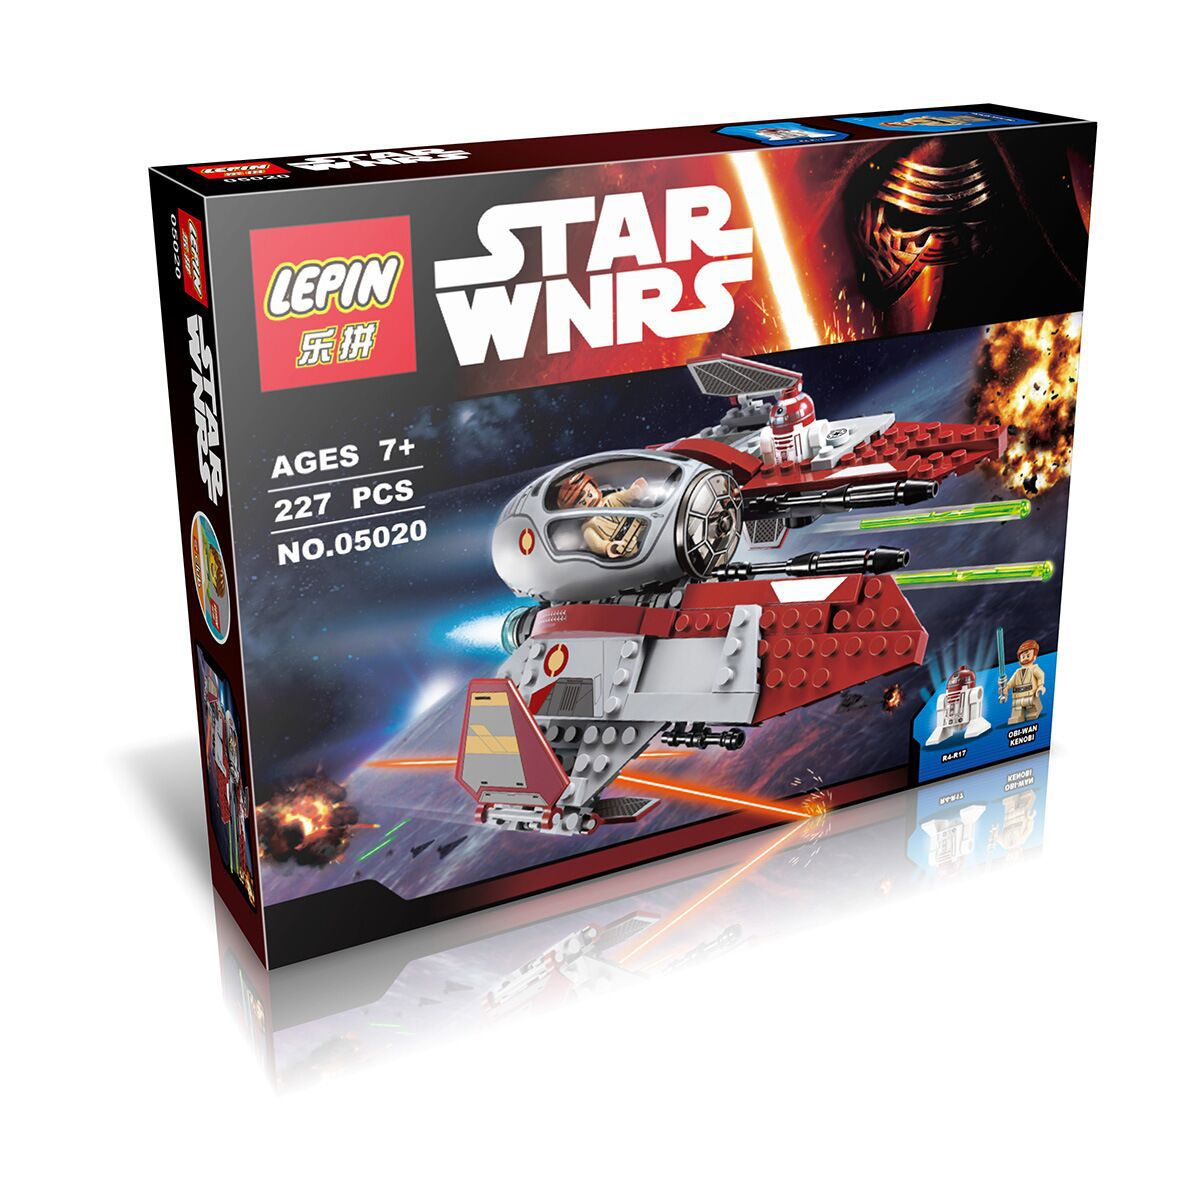 227+ PCS Building Bricks, LP 05020 Building Blocks 75135 Star Wars Obi-Wan's Jedi Interceptor.